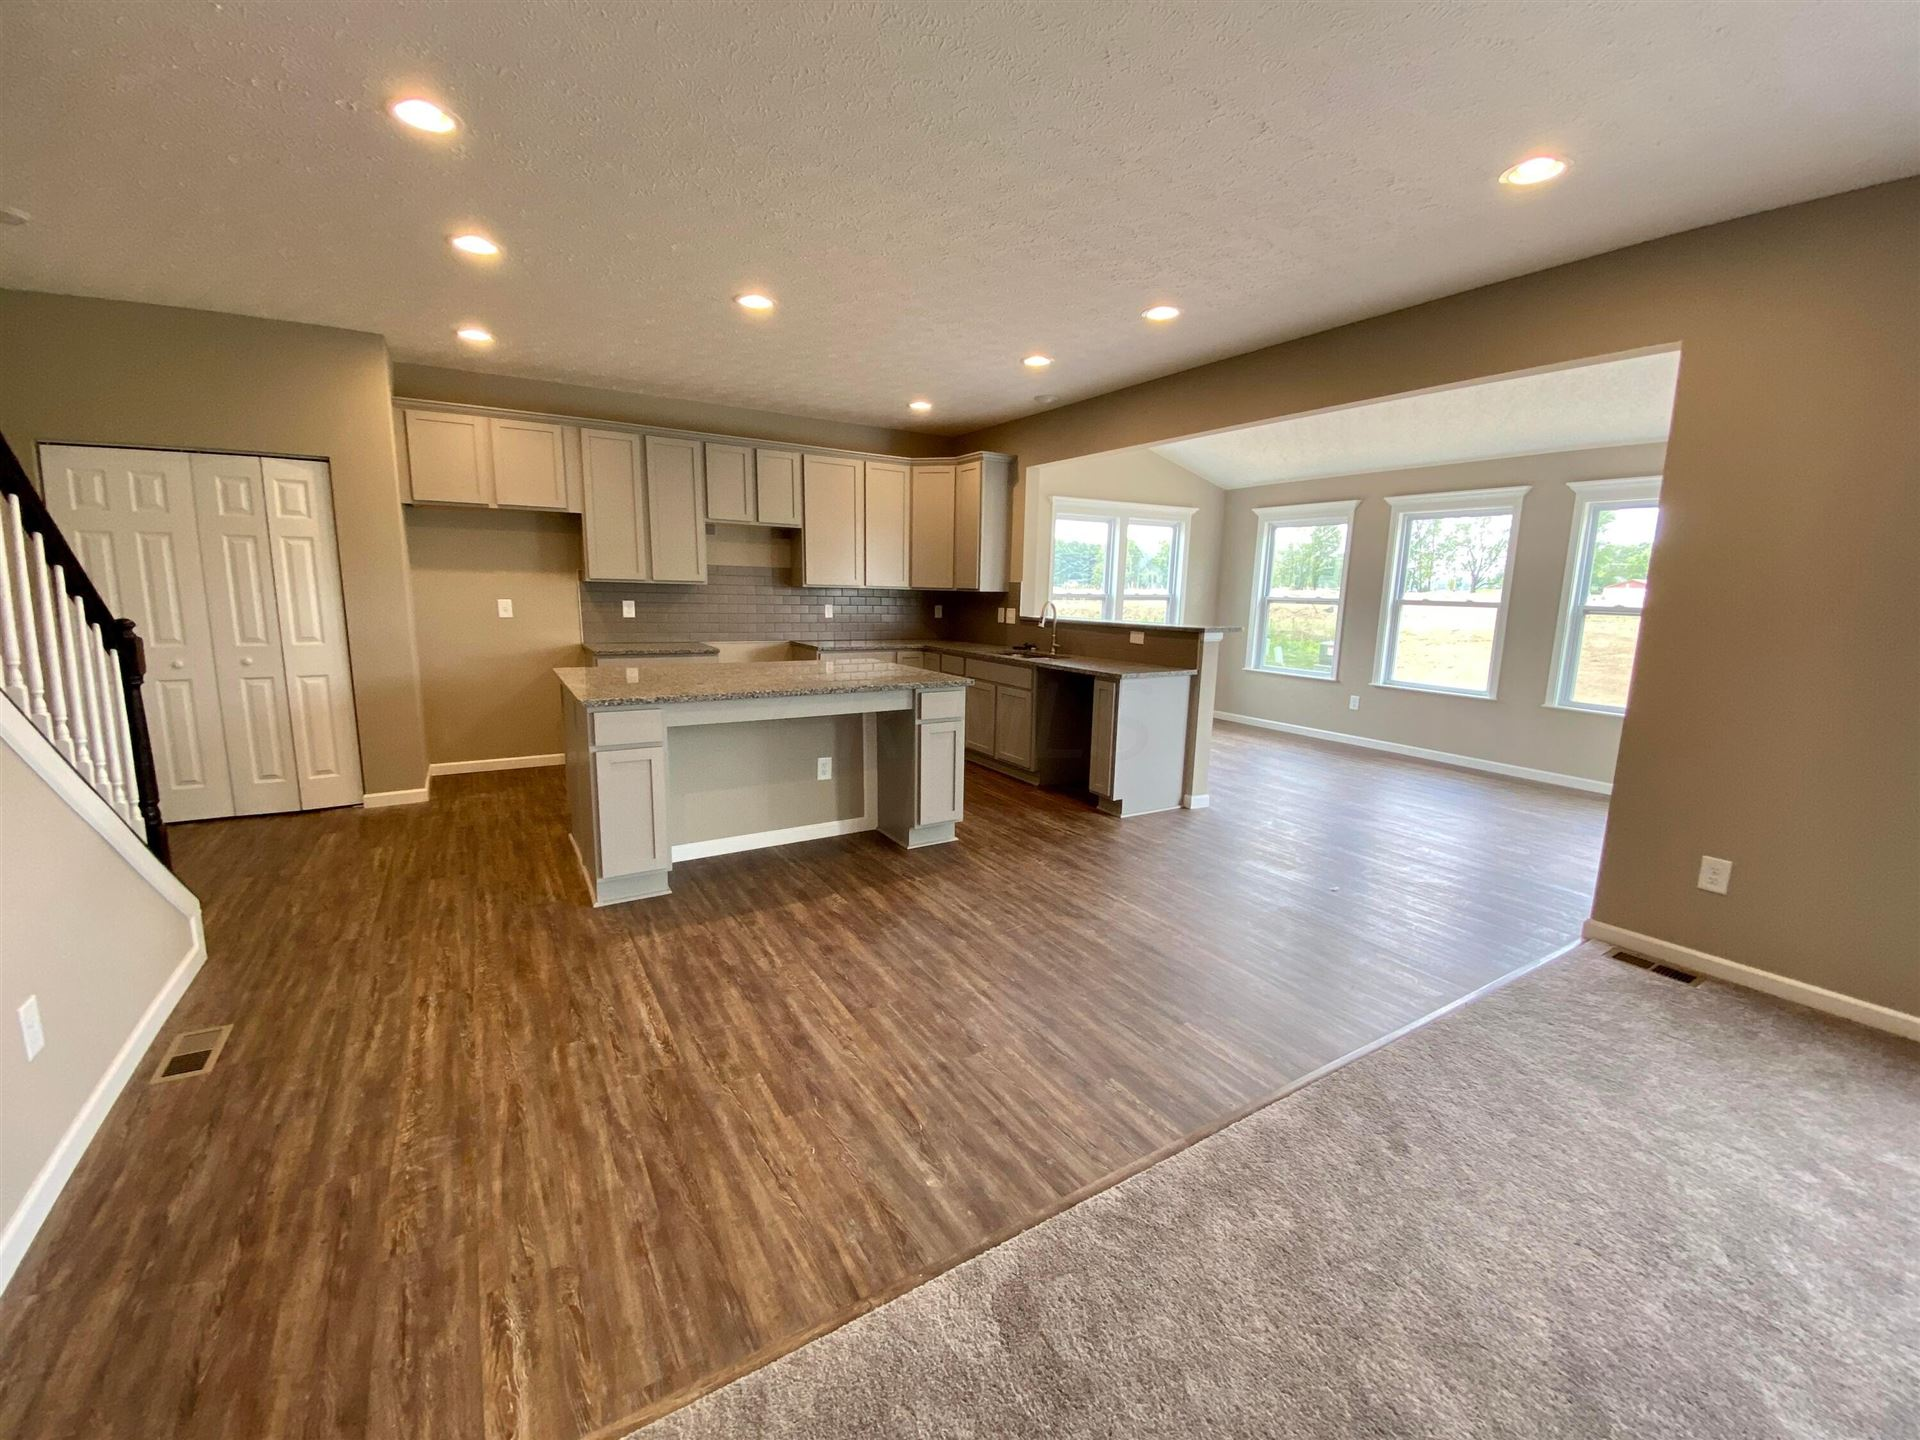 4058 Topsail Drive, Lewis Center, OH 43035 - MLS#: 221004878